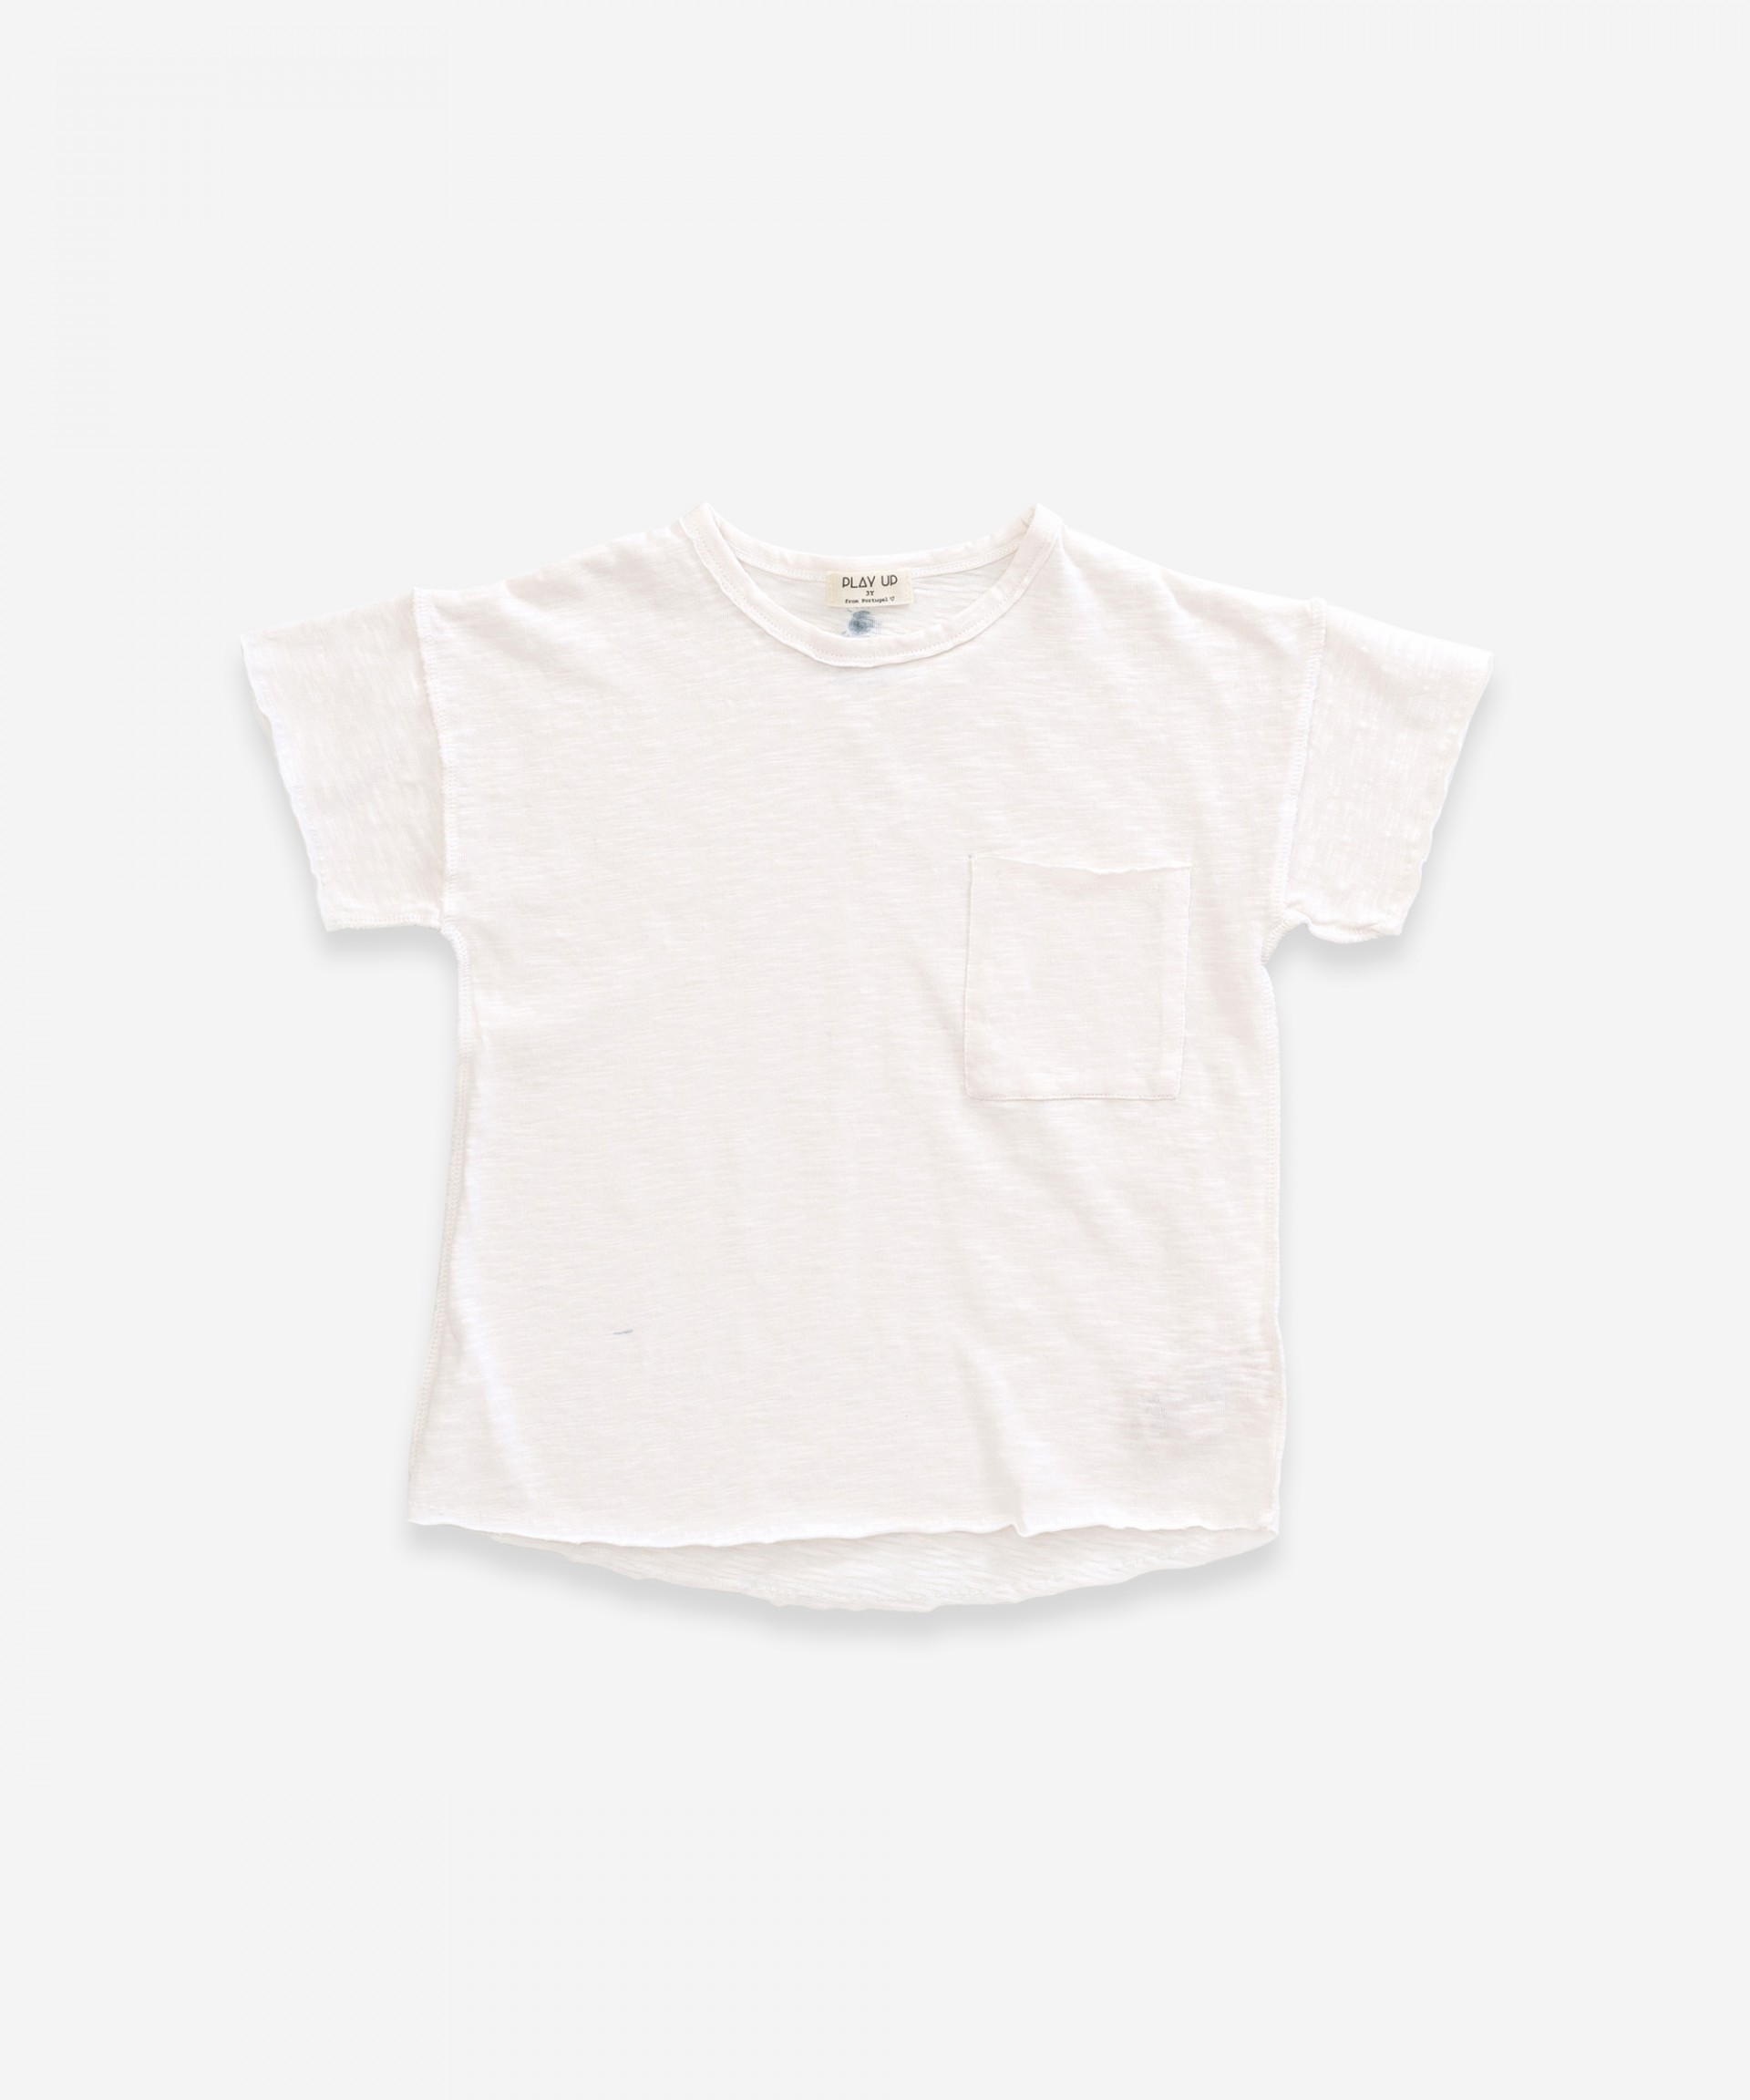 T-shirt anti-UV in cotone organico | Weaving